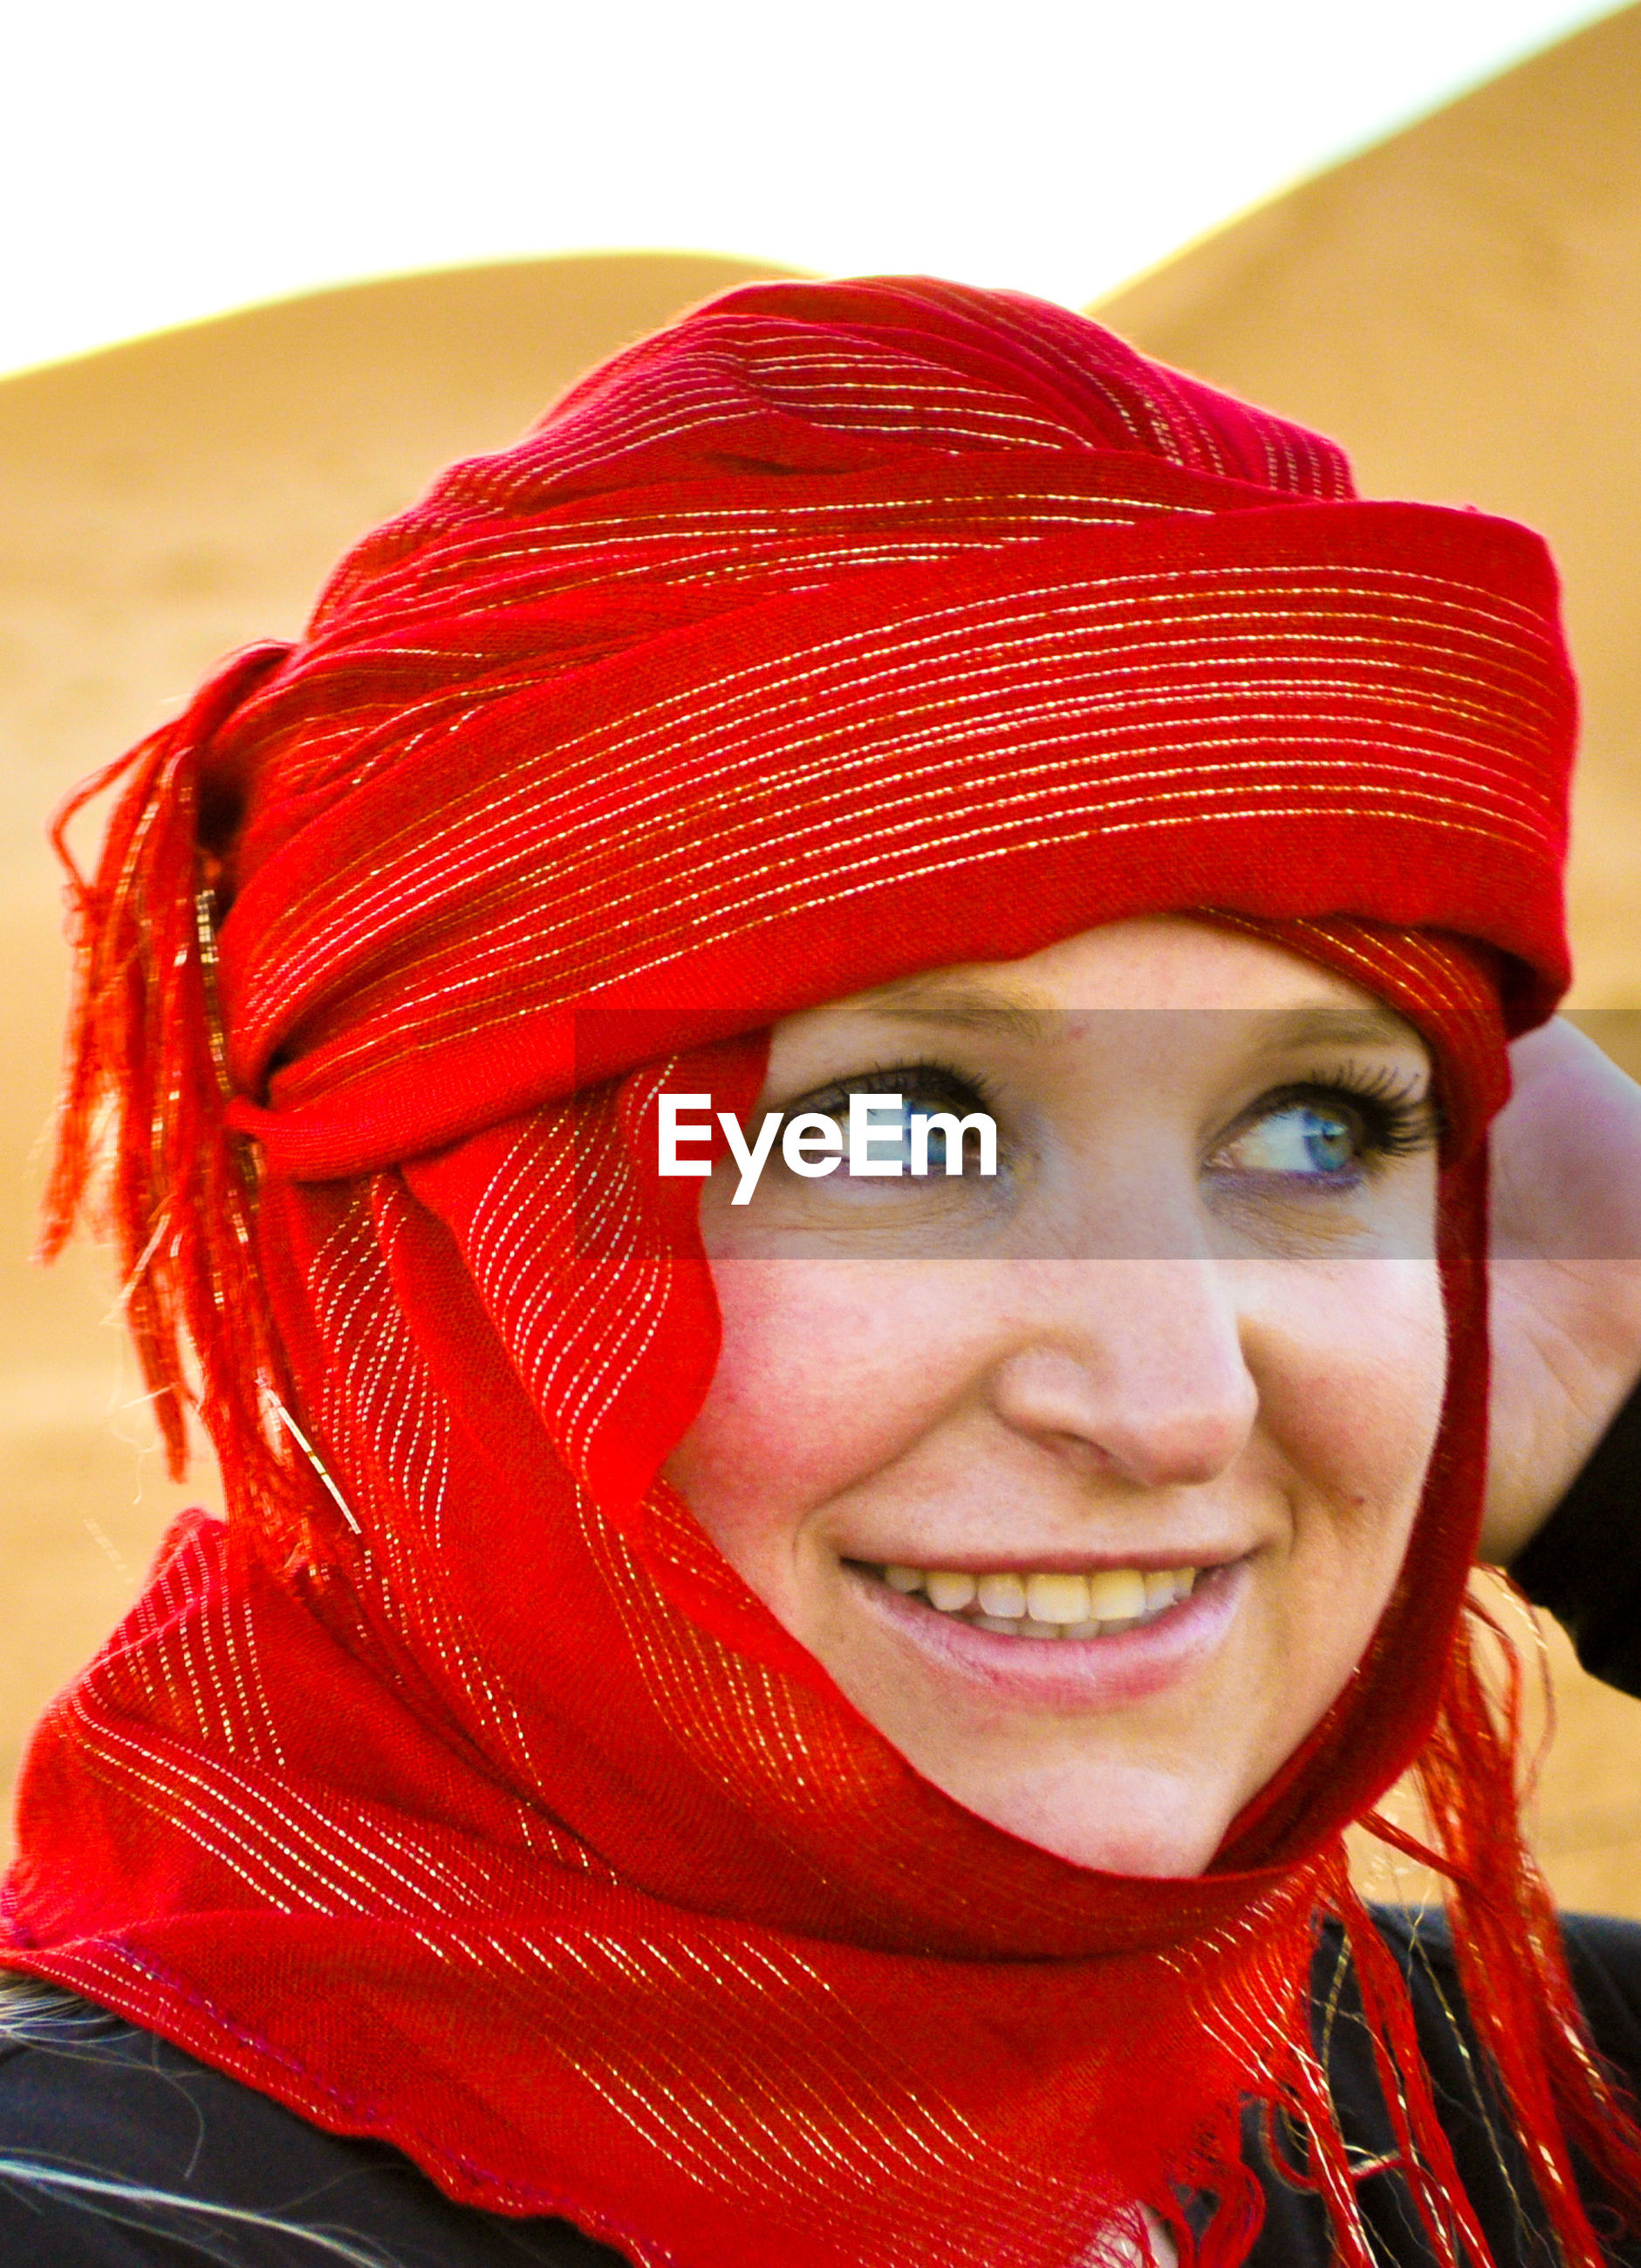 Close-up of smiling woman wearing red headscarf at desert